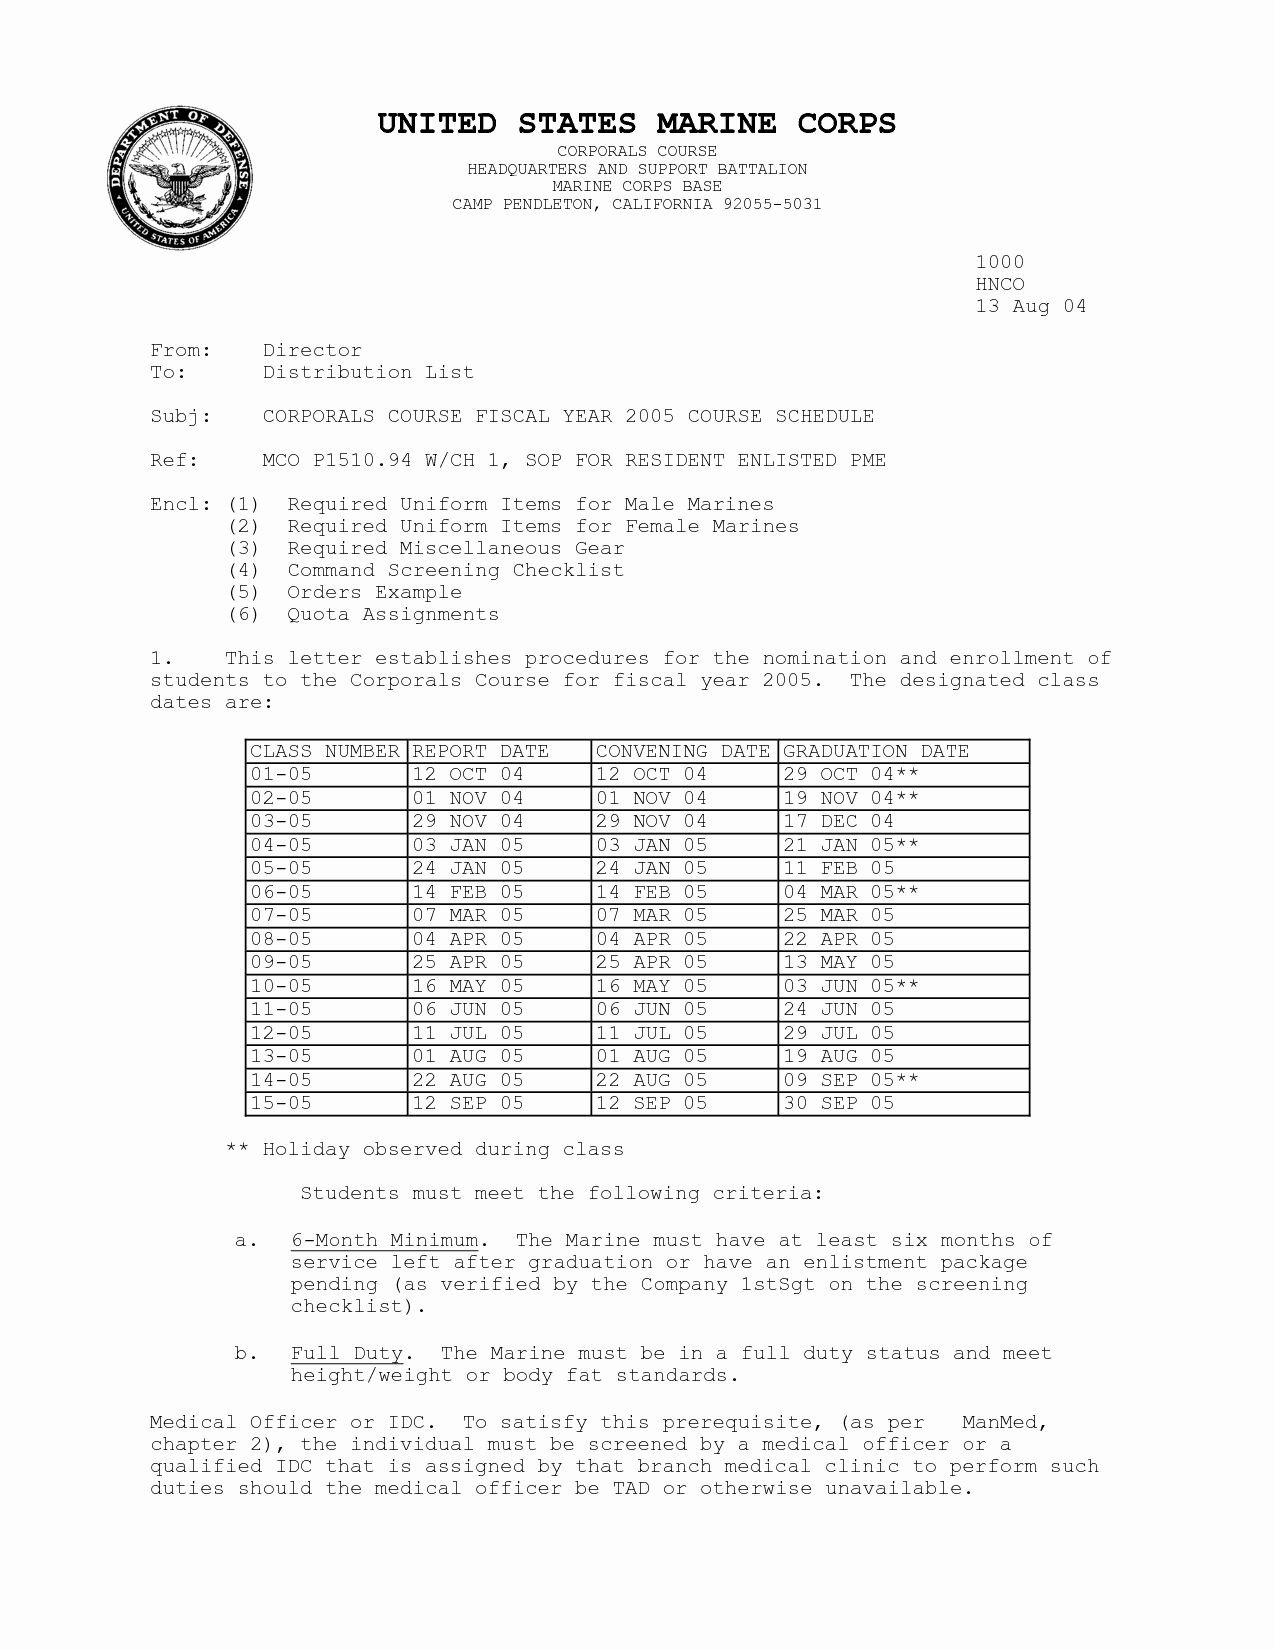 Warning order Template Usmc Elegant 24 Of Template A Marine Corps order